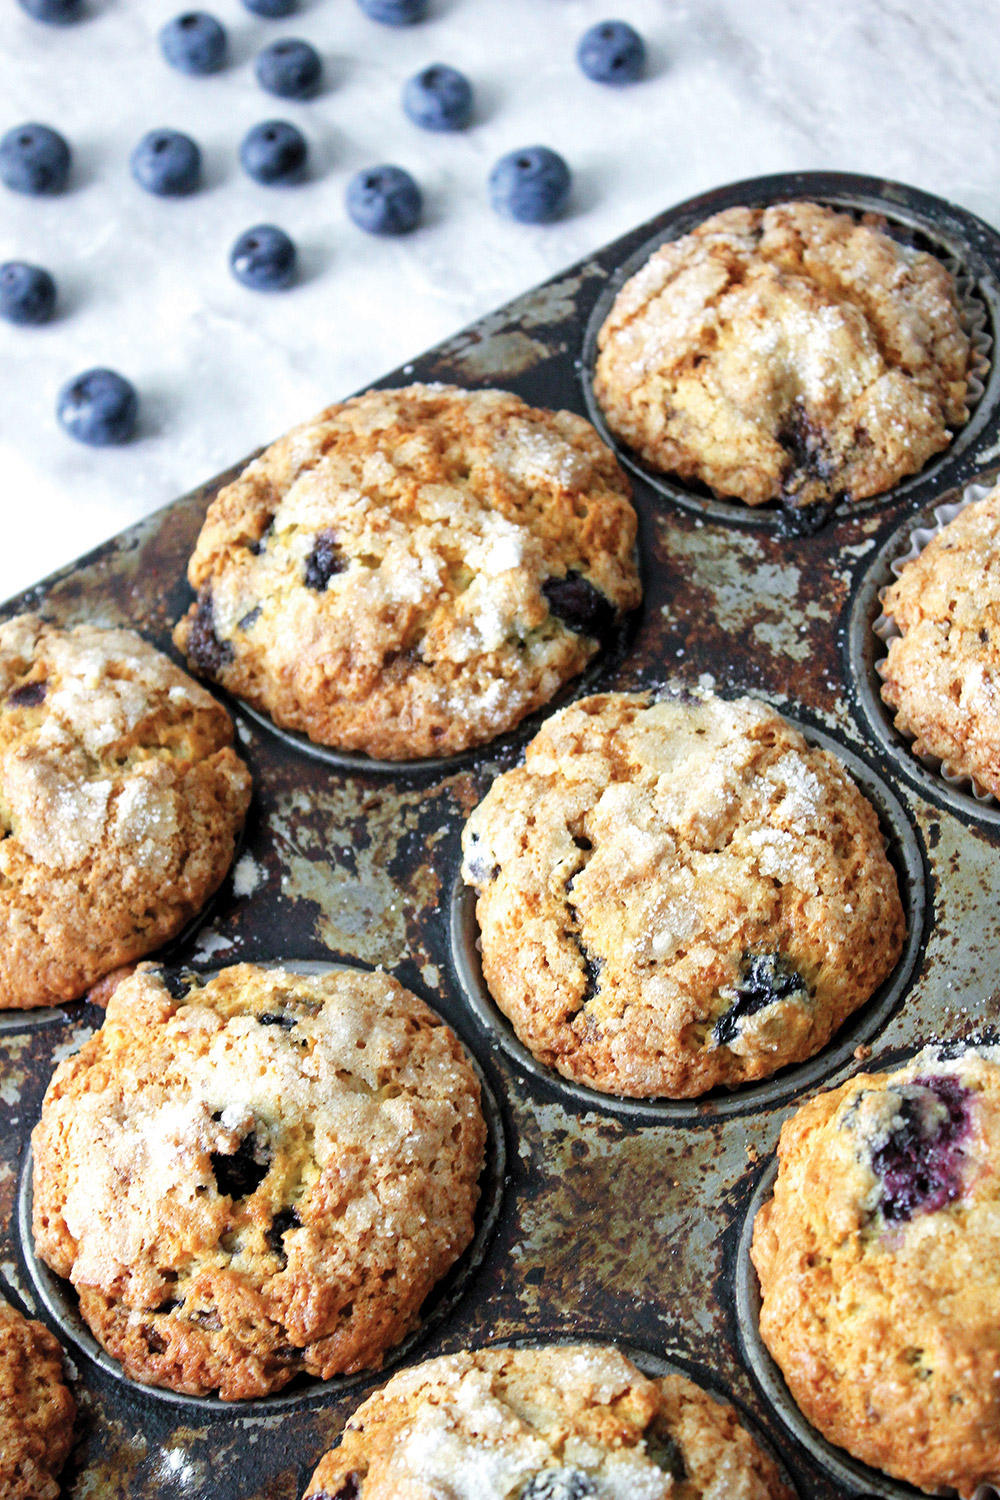 Blueberry muffins with sugar crusted crowns in muffin tin with blueberries in background.